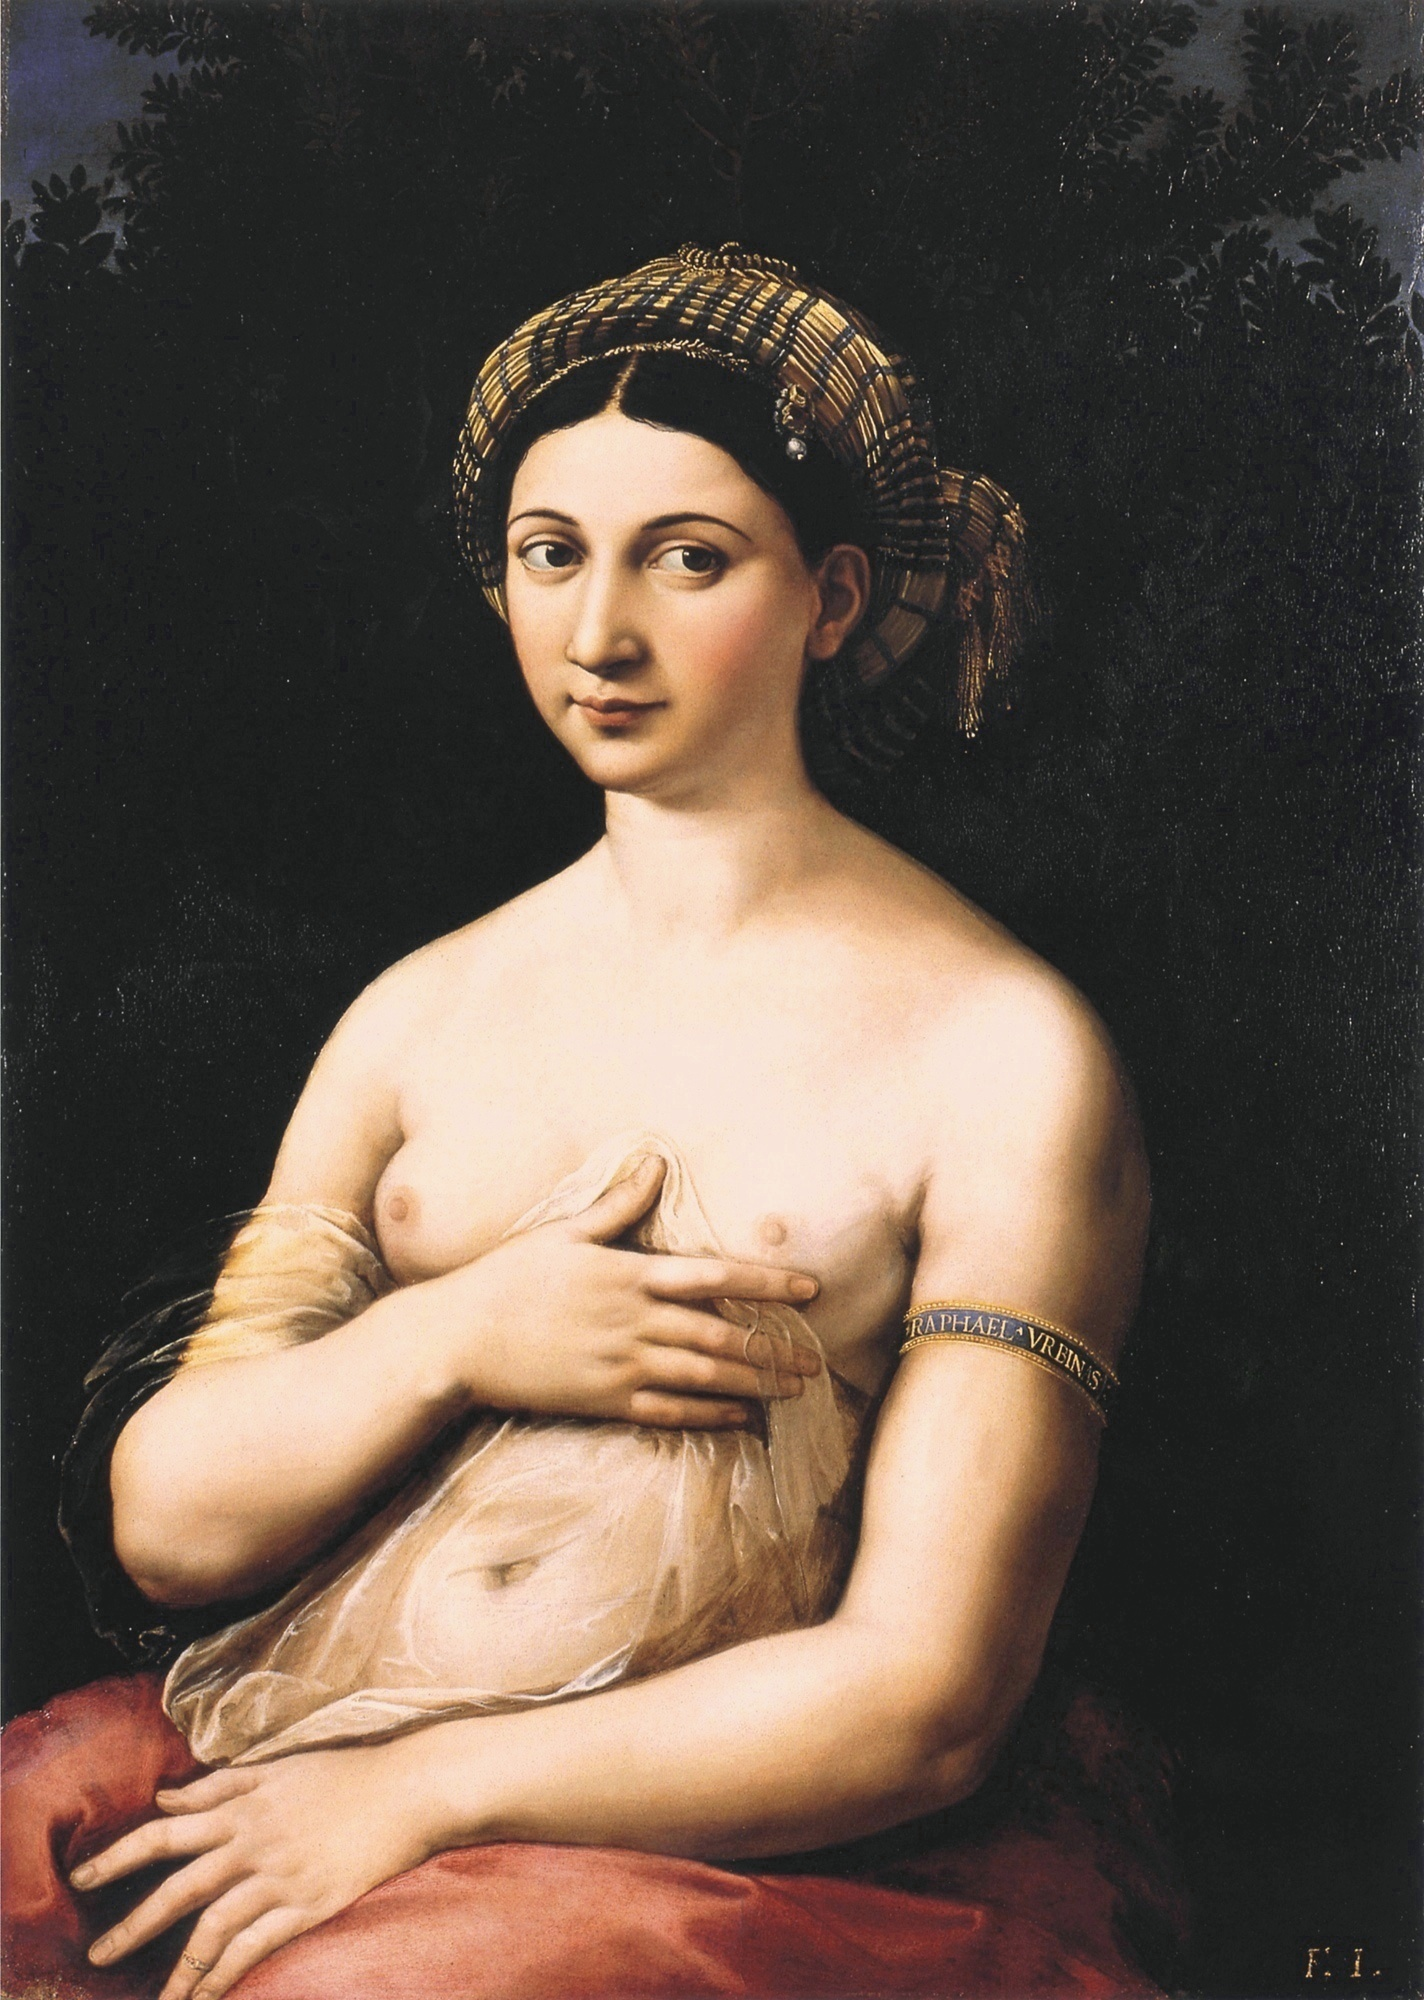 Chiaroscuro - Chiaroscuro (Italian for light-dark) in art, is the use of strong contrasts between light and dark, usually bold contrasts affecting a whole composition. The High Rennaisanse Italian painter, Rapheal made great use of this technique.La Fornarina, Raphael's mistress